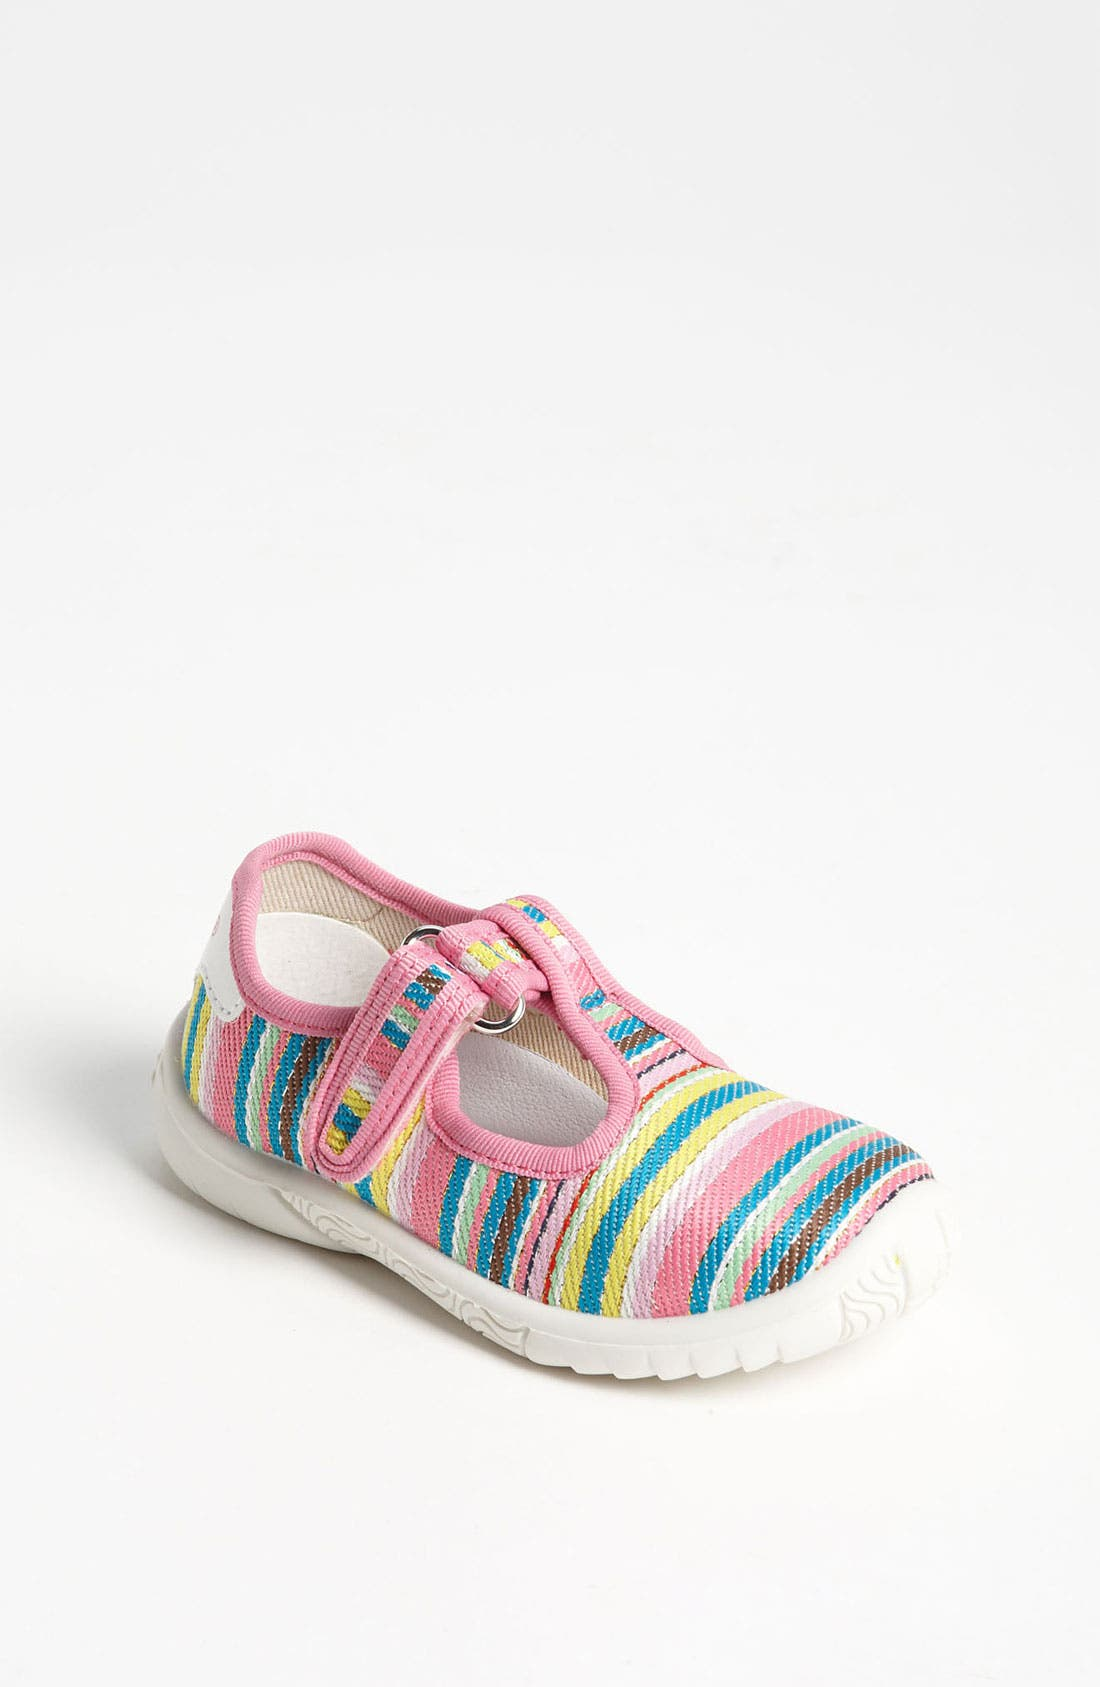 Main Image - Naturino '7477' Mary Jane Sneaker (Baby & Walker)